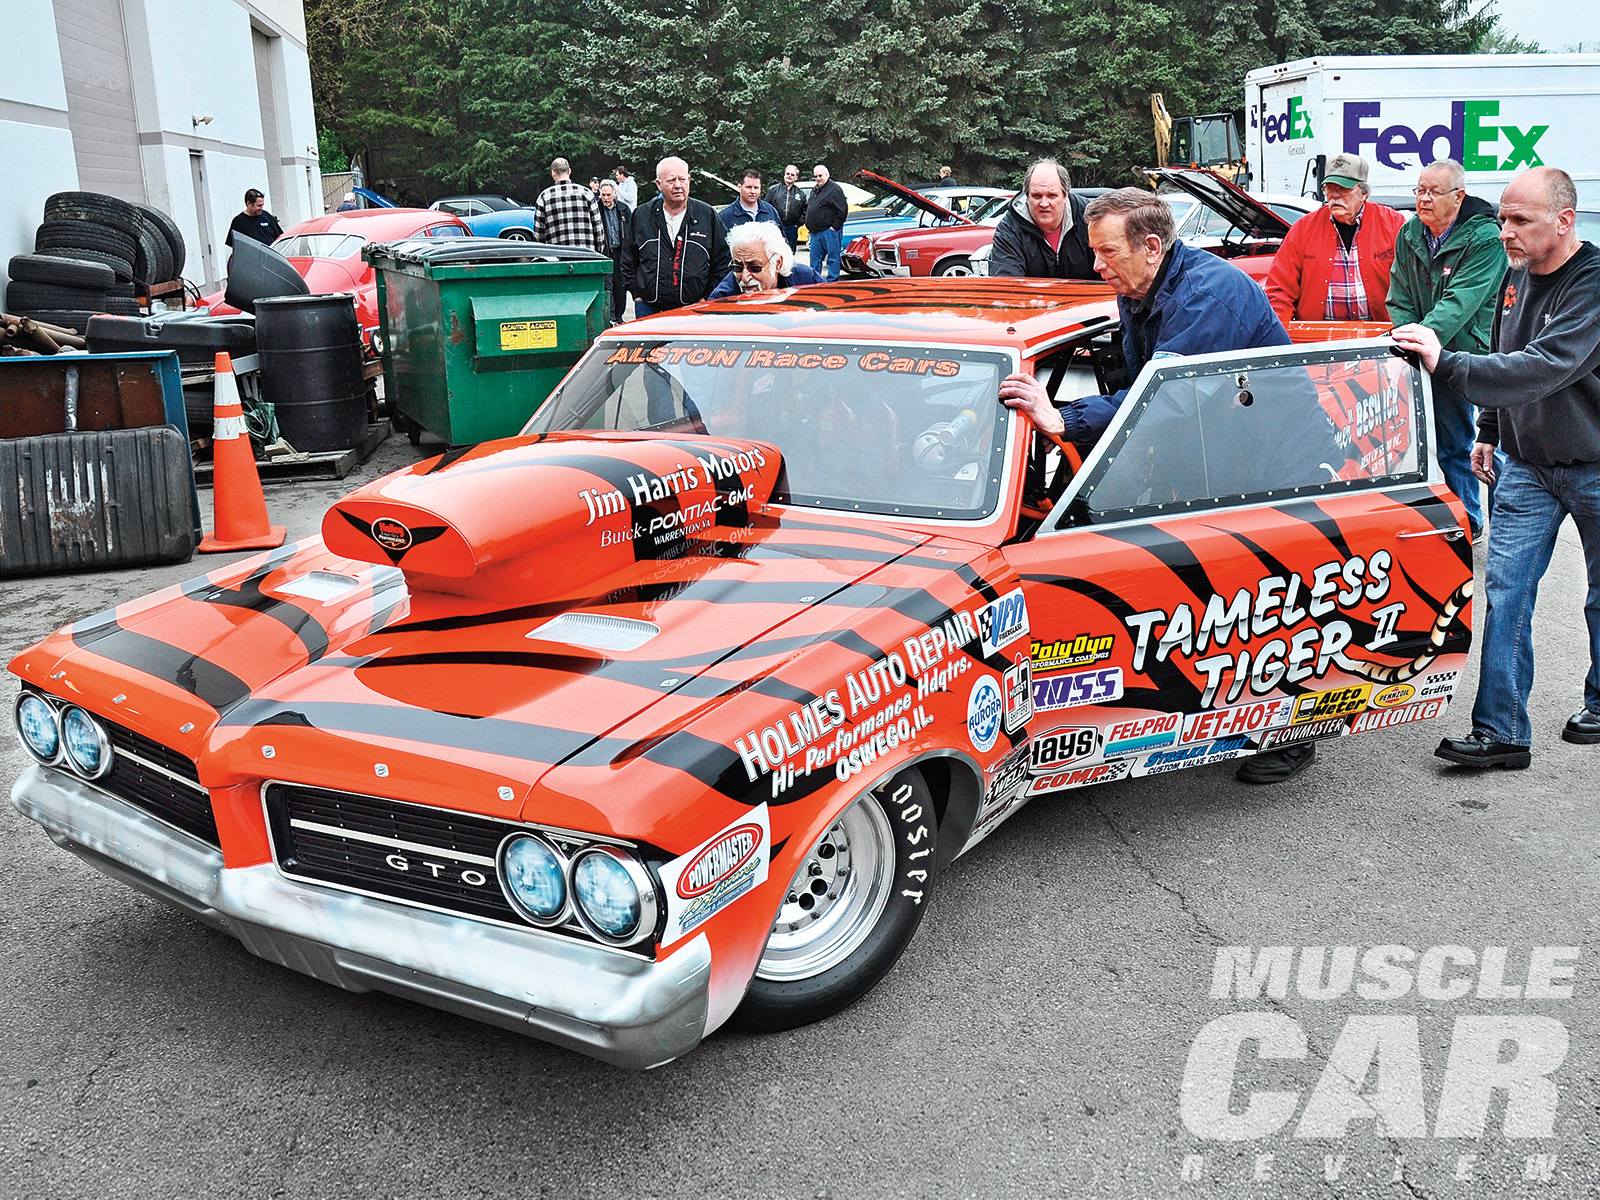 "Drag racing legend Arnie ""the Farmer"" Beswick was at the show with his '64 GTO Tameless Tiger II representing Holmes Auto Repair in Oswego, Illinois. Arnie was leading the crew to push his race car into position and was promptly greeted with a surprise gathering for his 82nd birthday. When is the last time you saw an 82-year-old gentleman pushing the race car he still drives at speeds of more than 170 mph?"